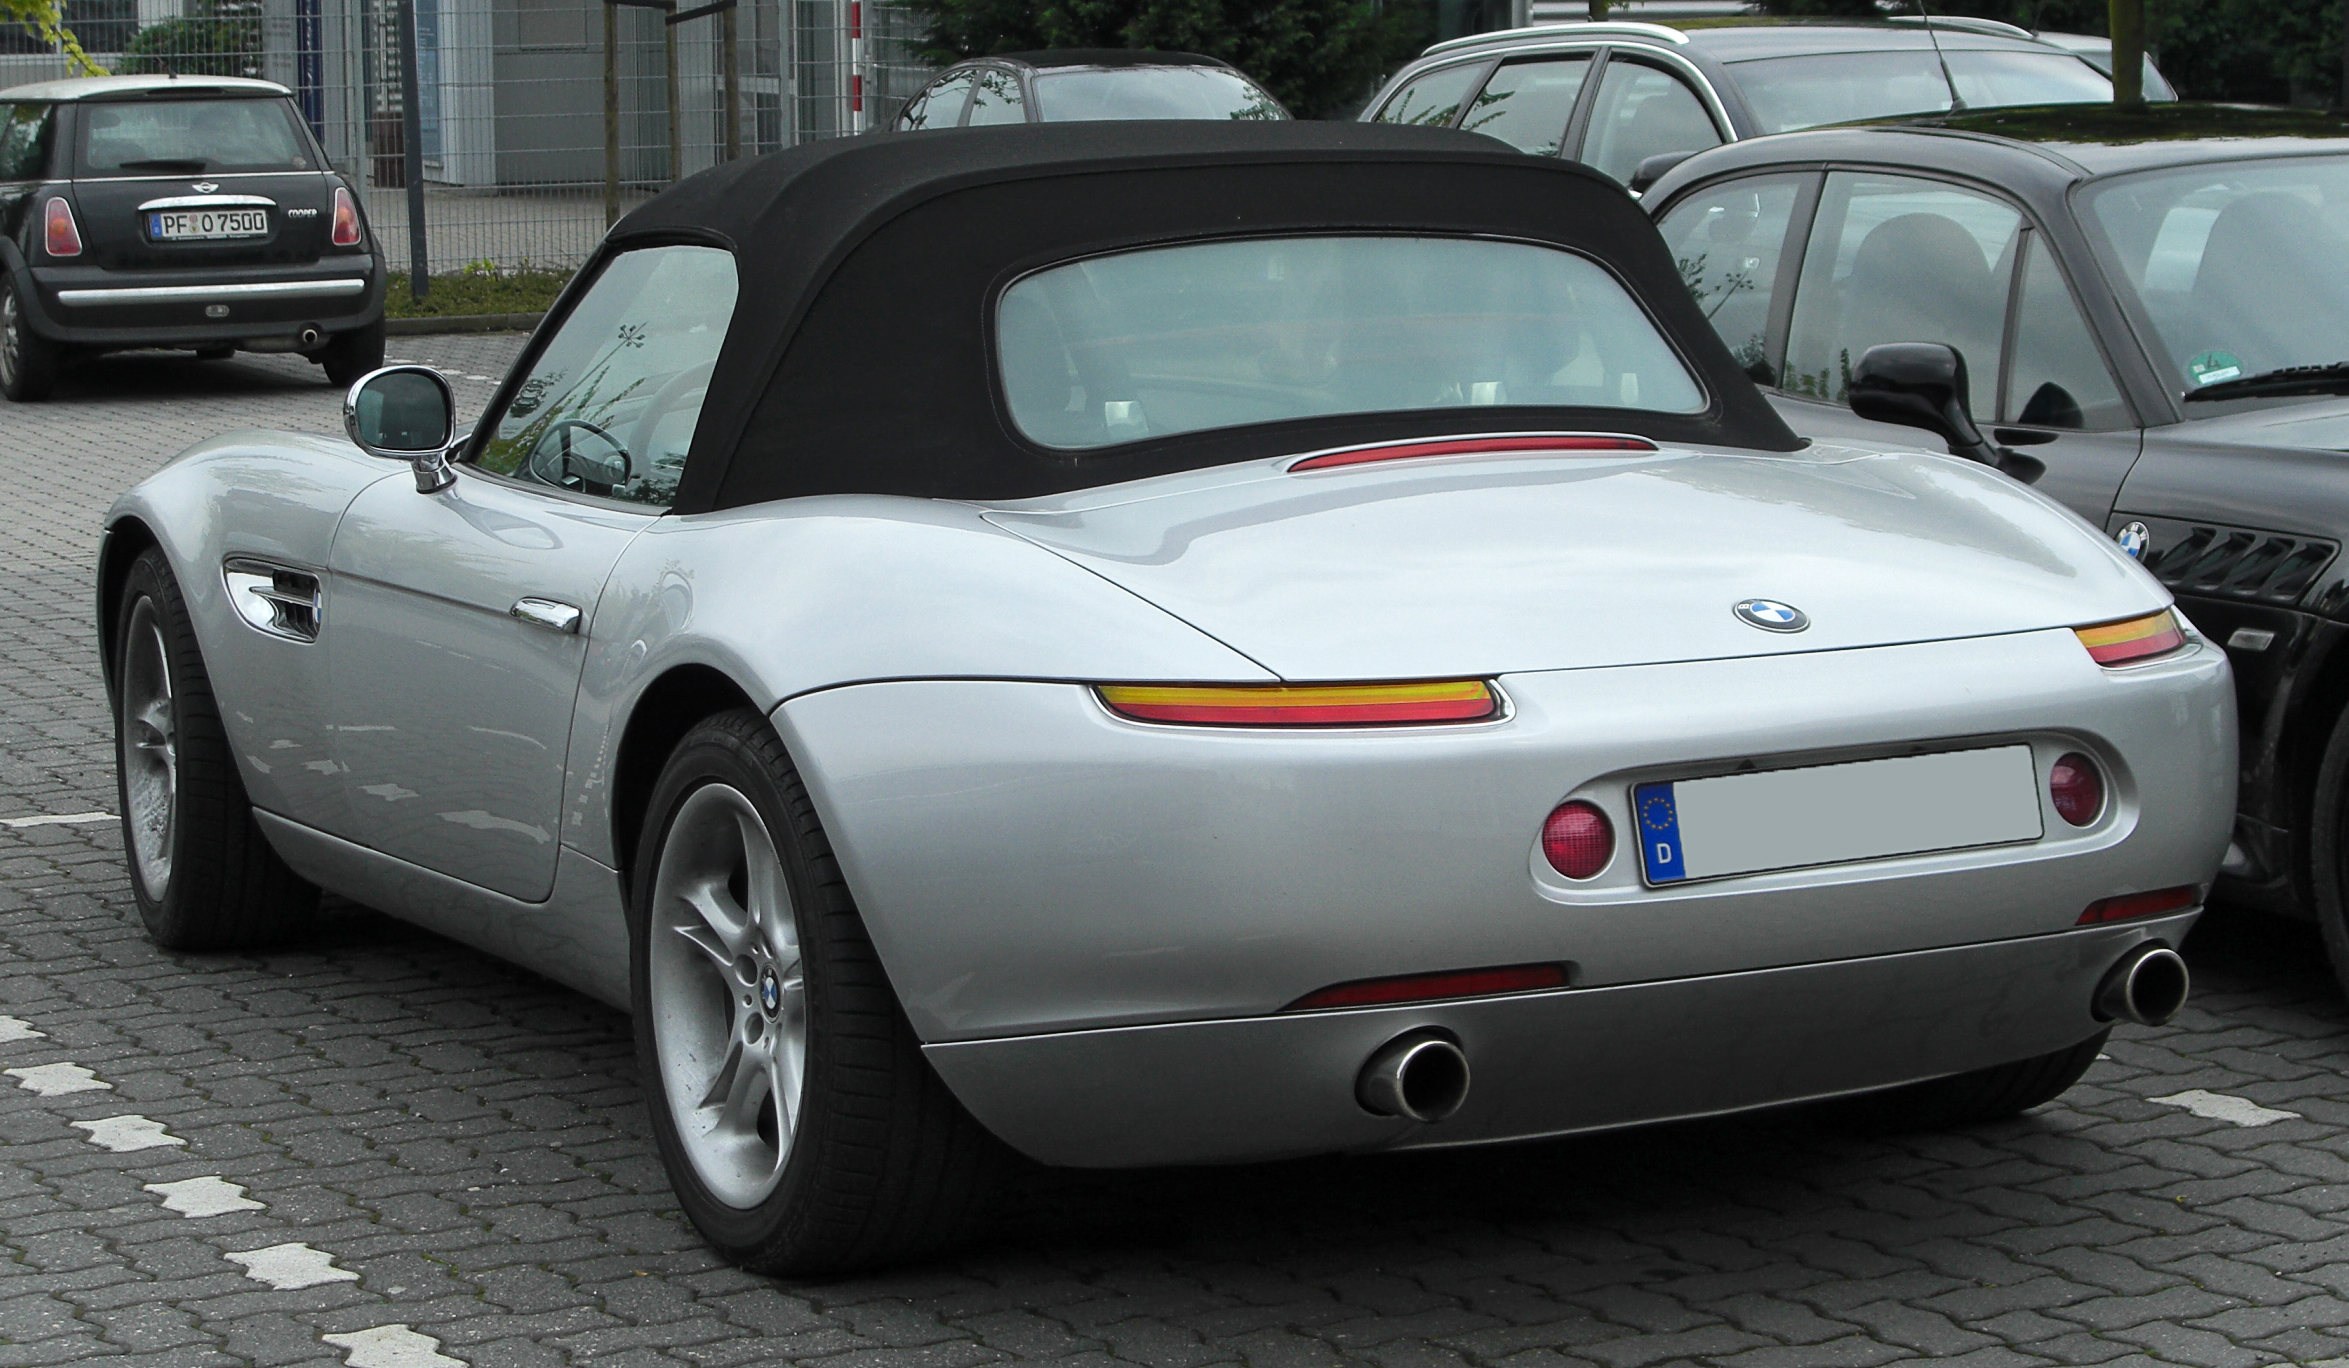 File Bmw Z8 Rear 20100508 Jpg 維基百科,自由的百科全書